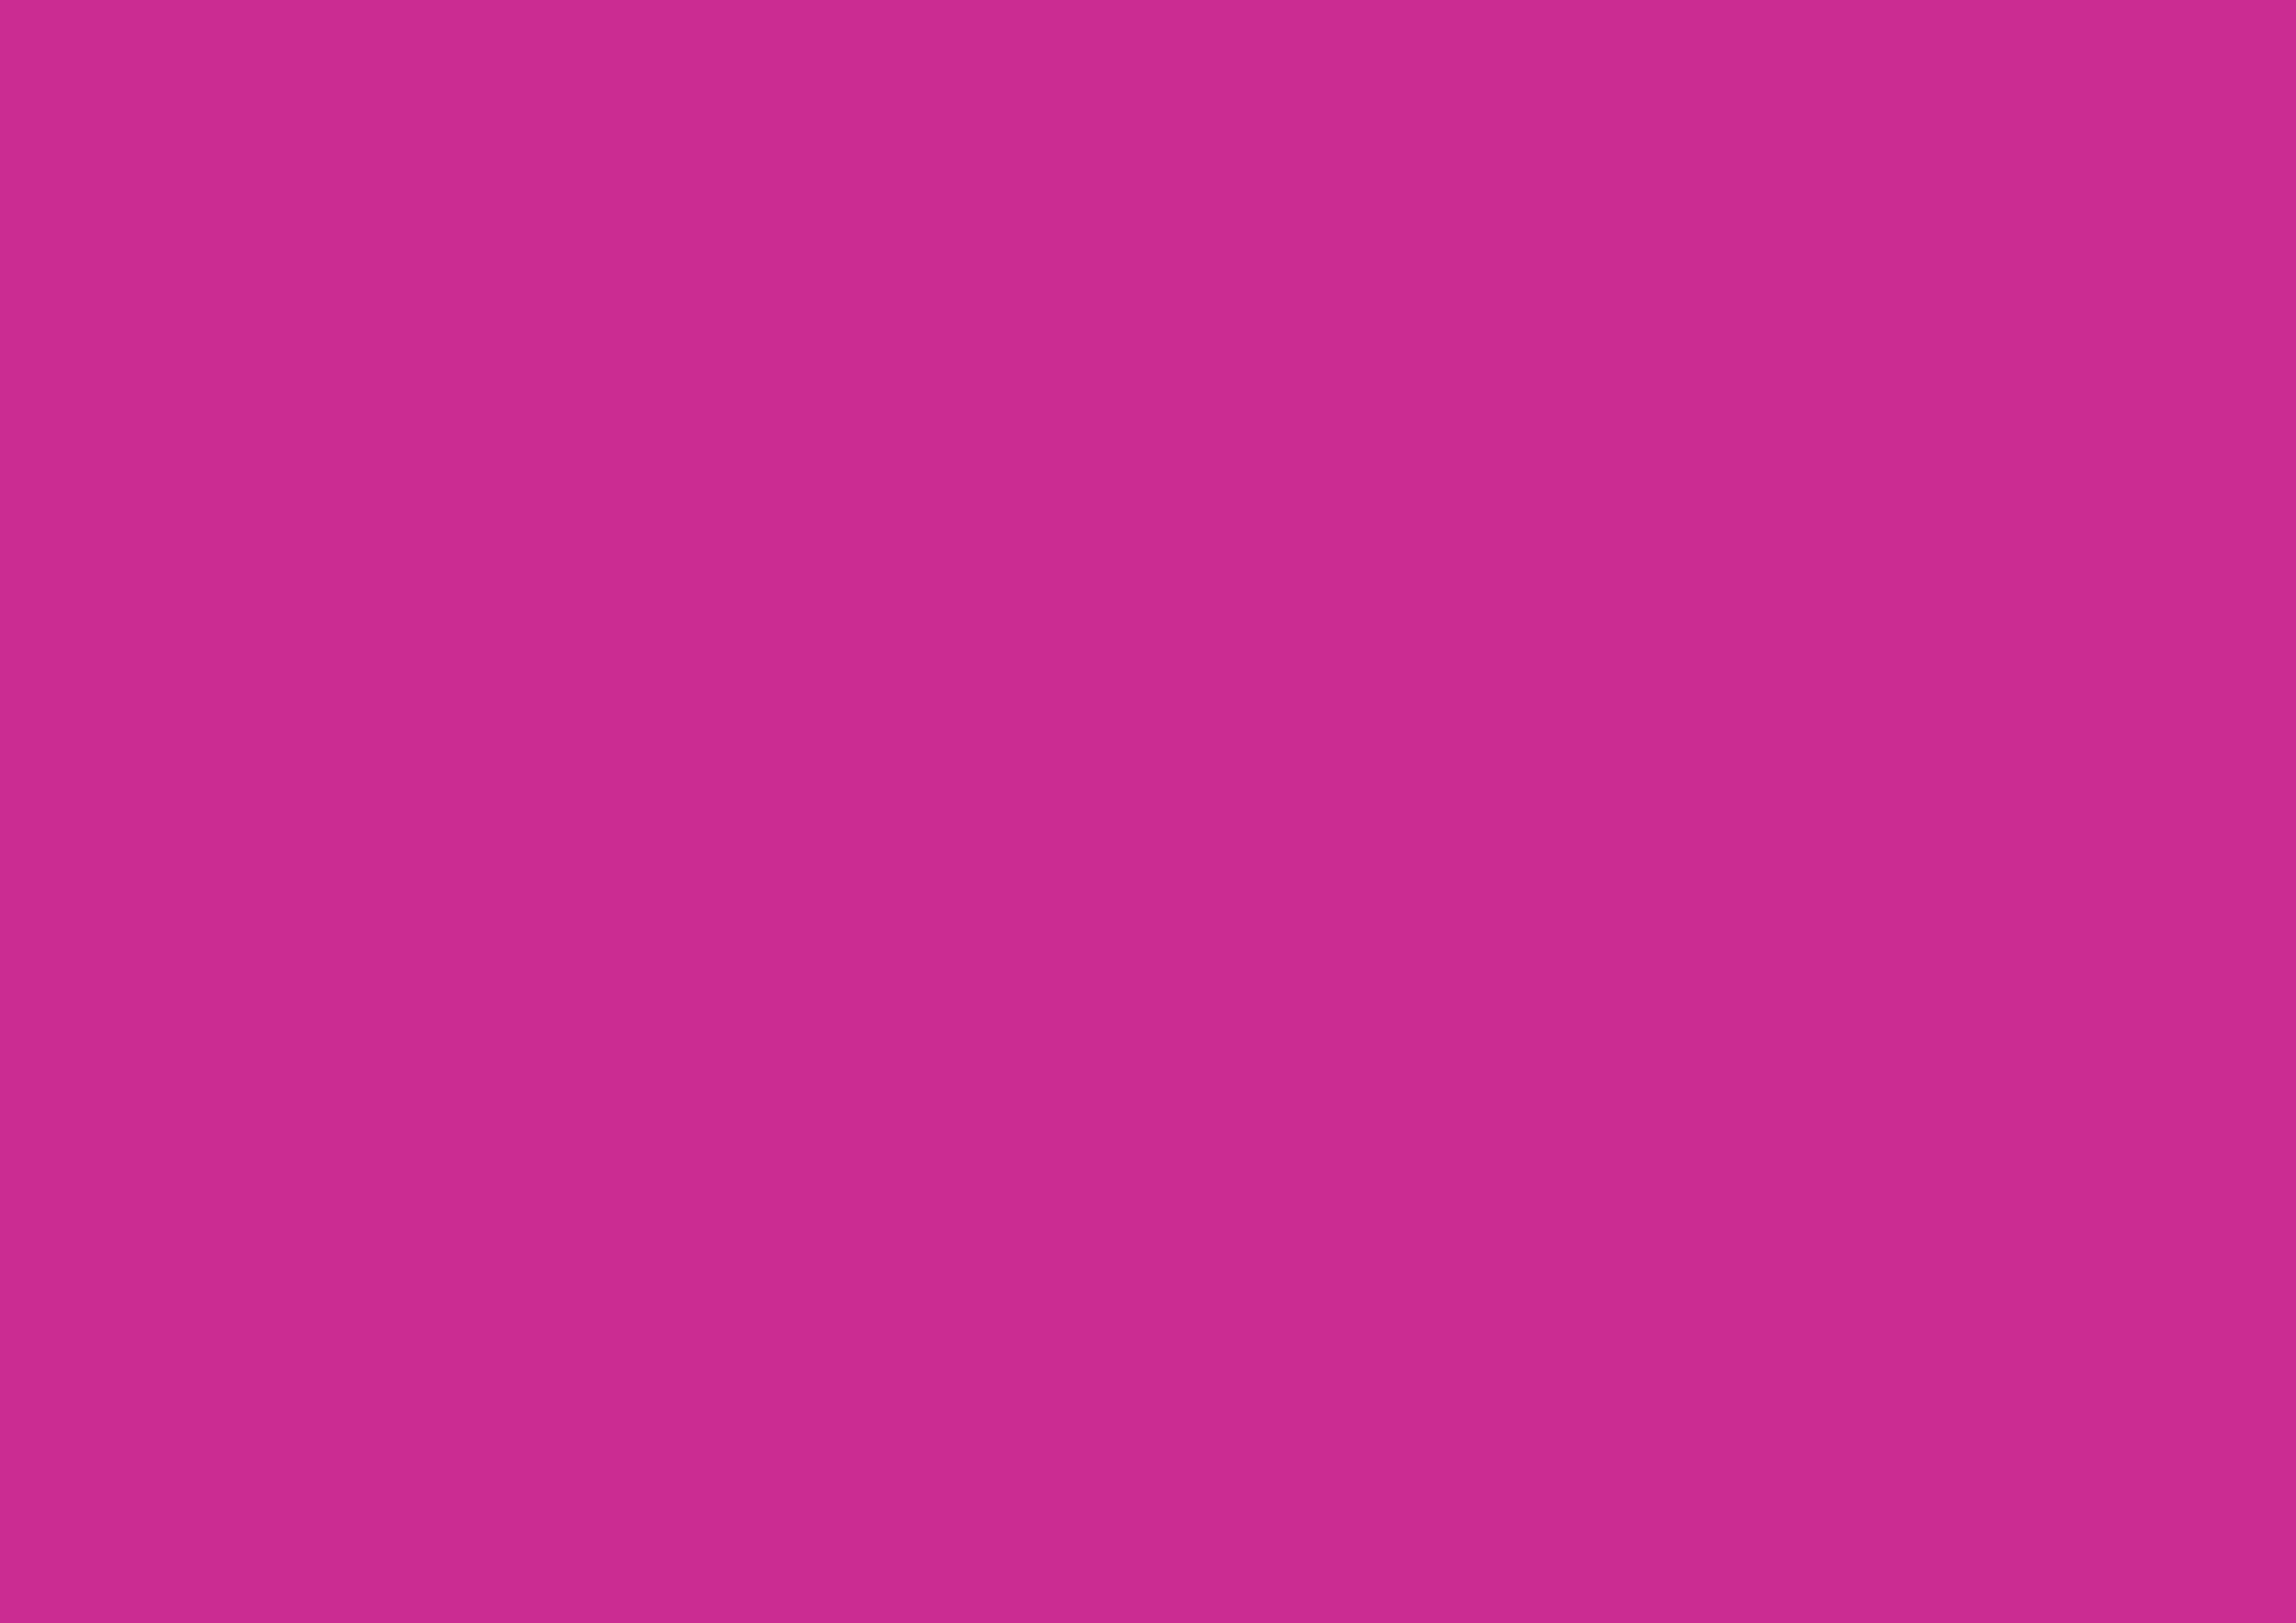 3508x2480 Royal Fuchsia Solid Color Background